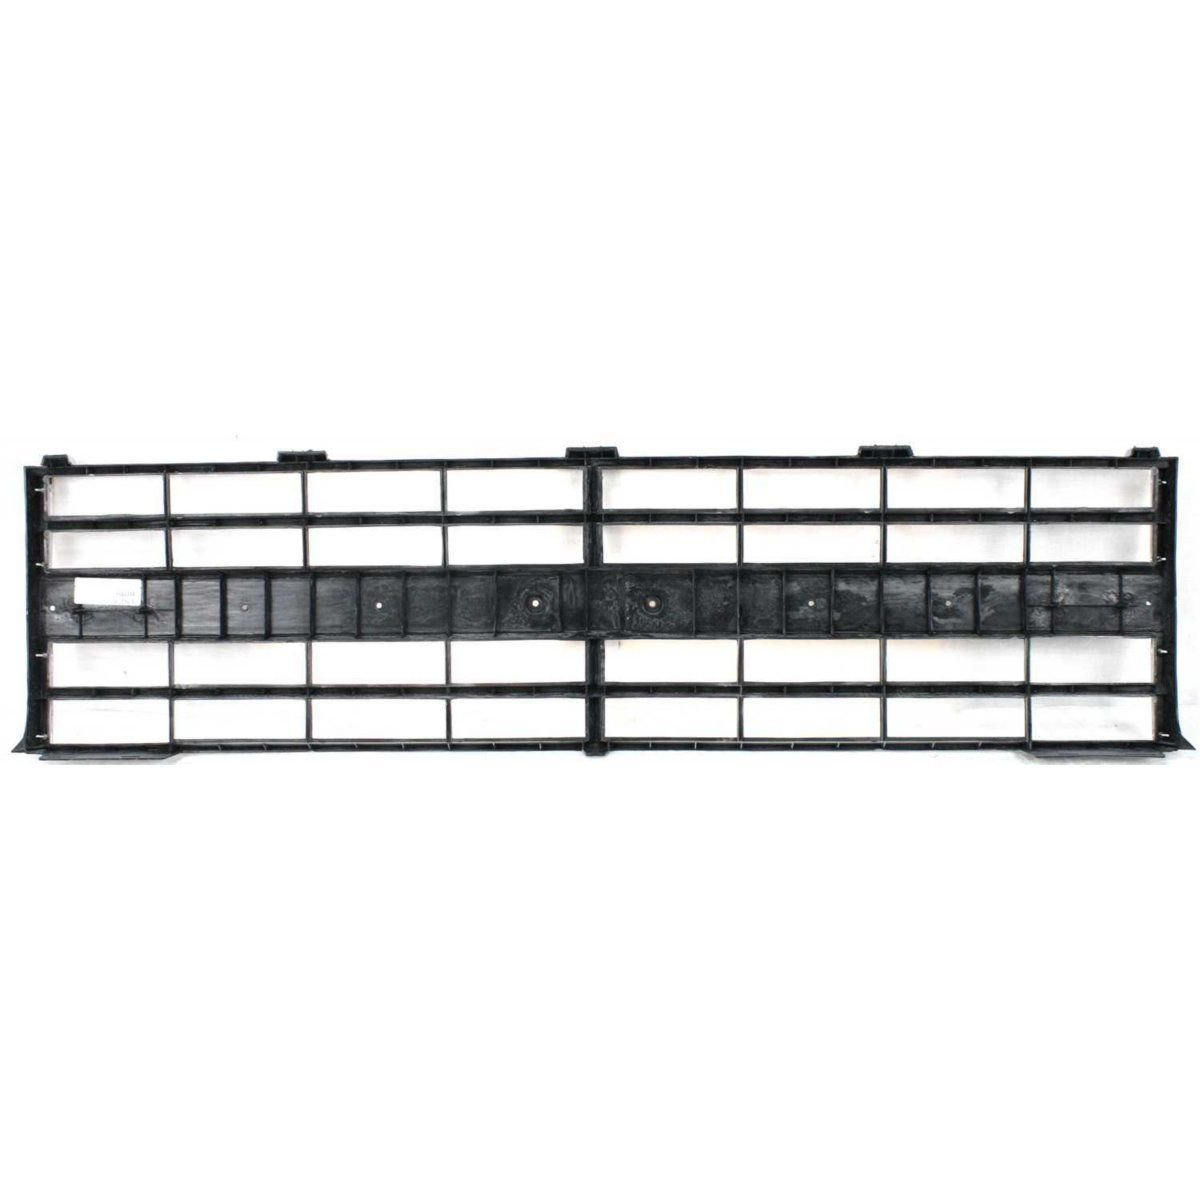 New Grille For 1985-1988 Chevrolet C//K Full Size Pickup For Quad Lamp Style Trucks Painted Argent Has Holes For Center Molding GM1200140 15554911